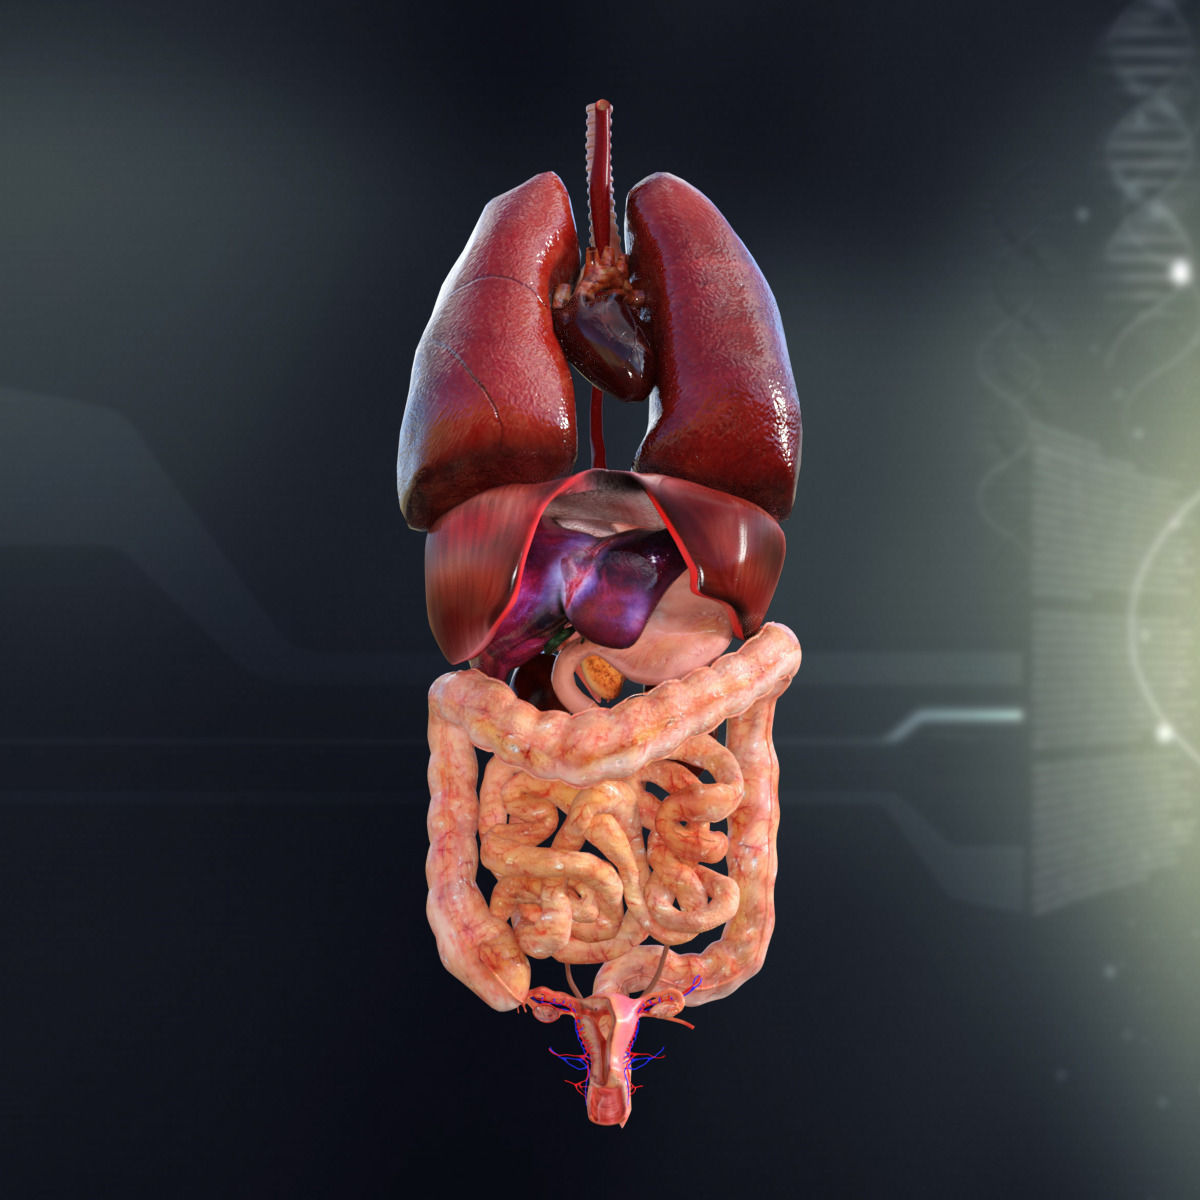 Human Female Internal Organs Anatomy 3D | CGTrader